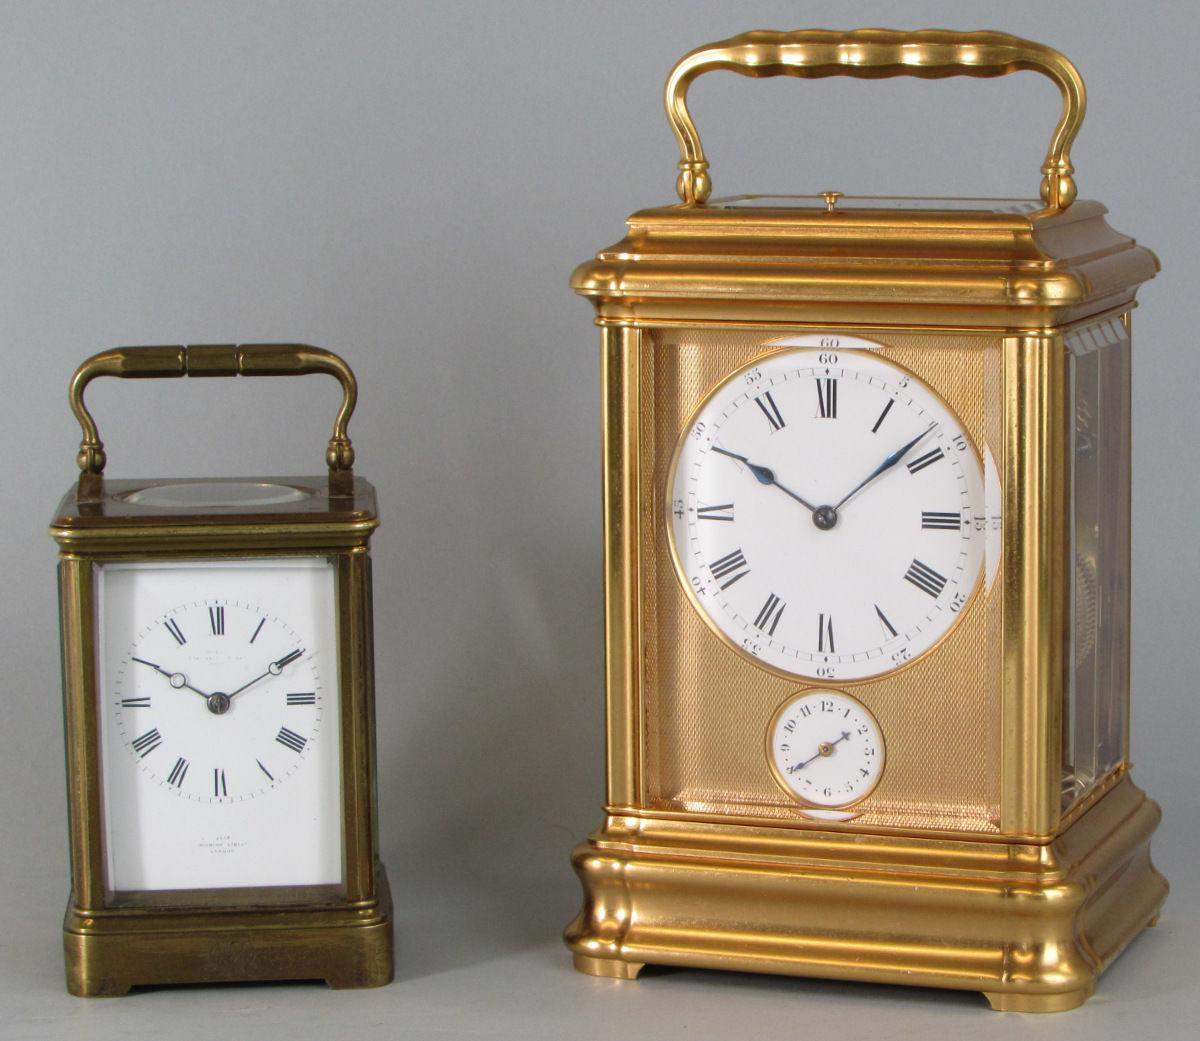 Drocourt Giant Grande-sonnerie carriage clock comparison